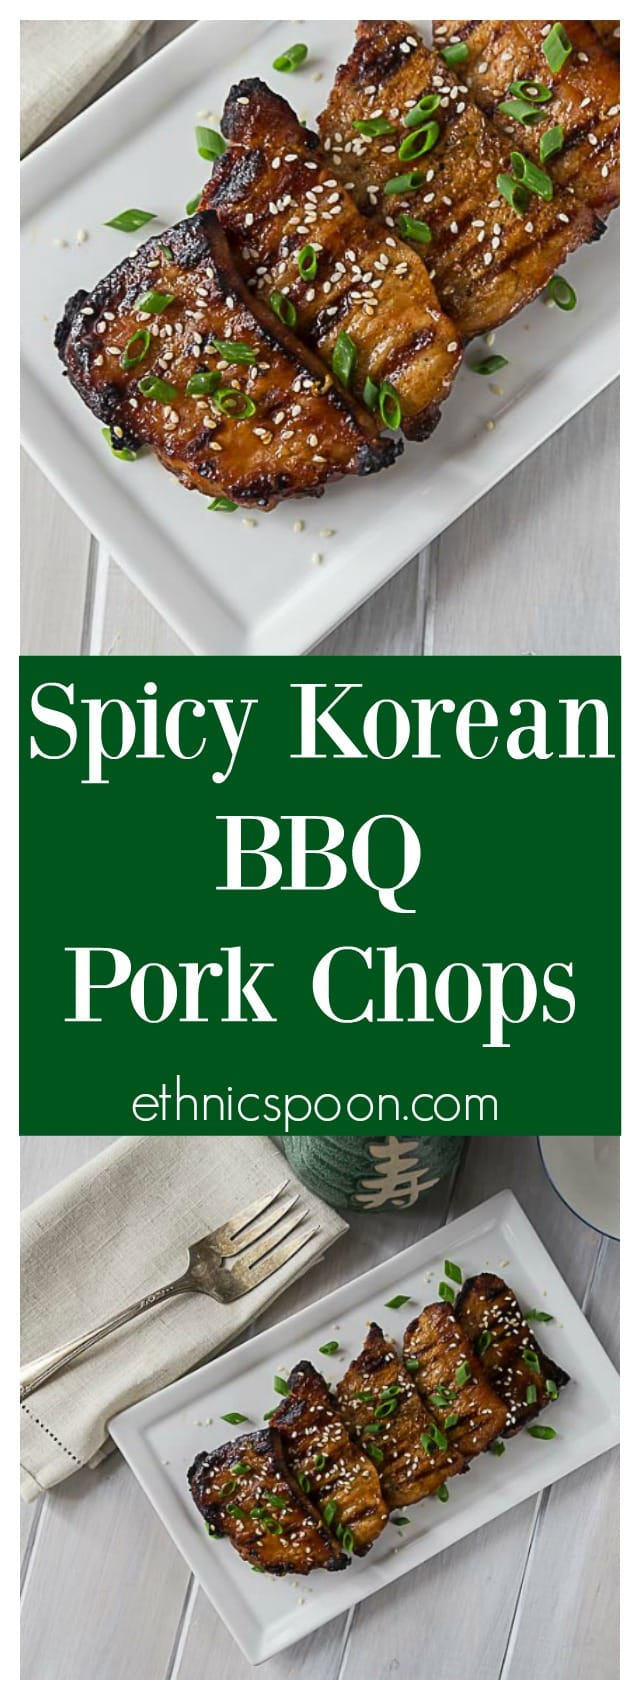 Korean barbecue pork chops analidas ethnic spoon tender and delicious grilled boneless pork chops in a spicy korean bbq sauce a quick forumfinder Image collections